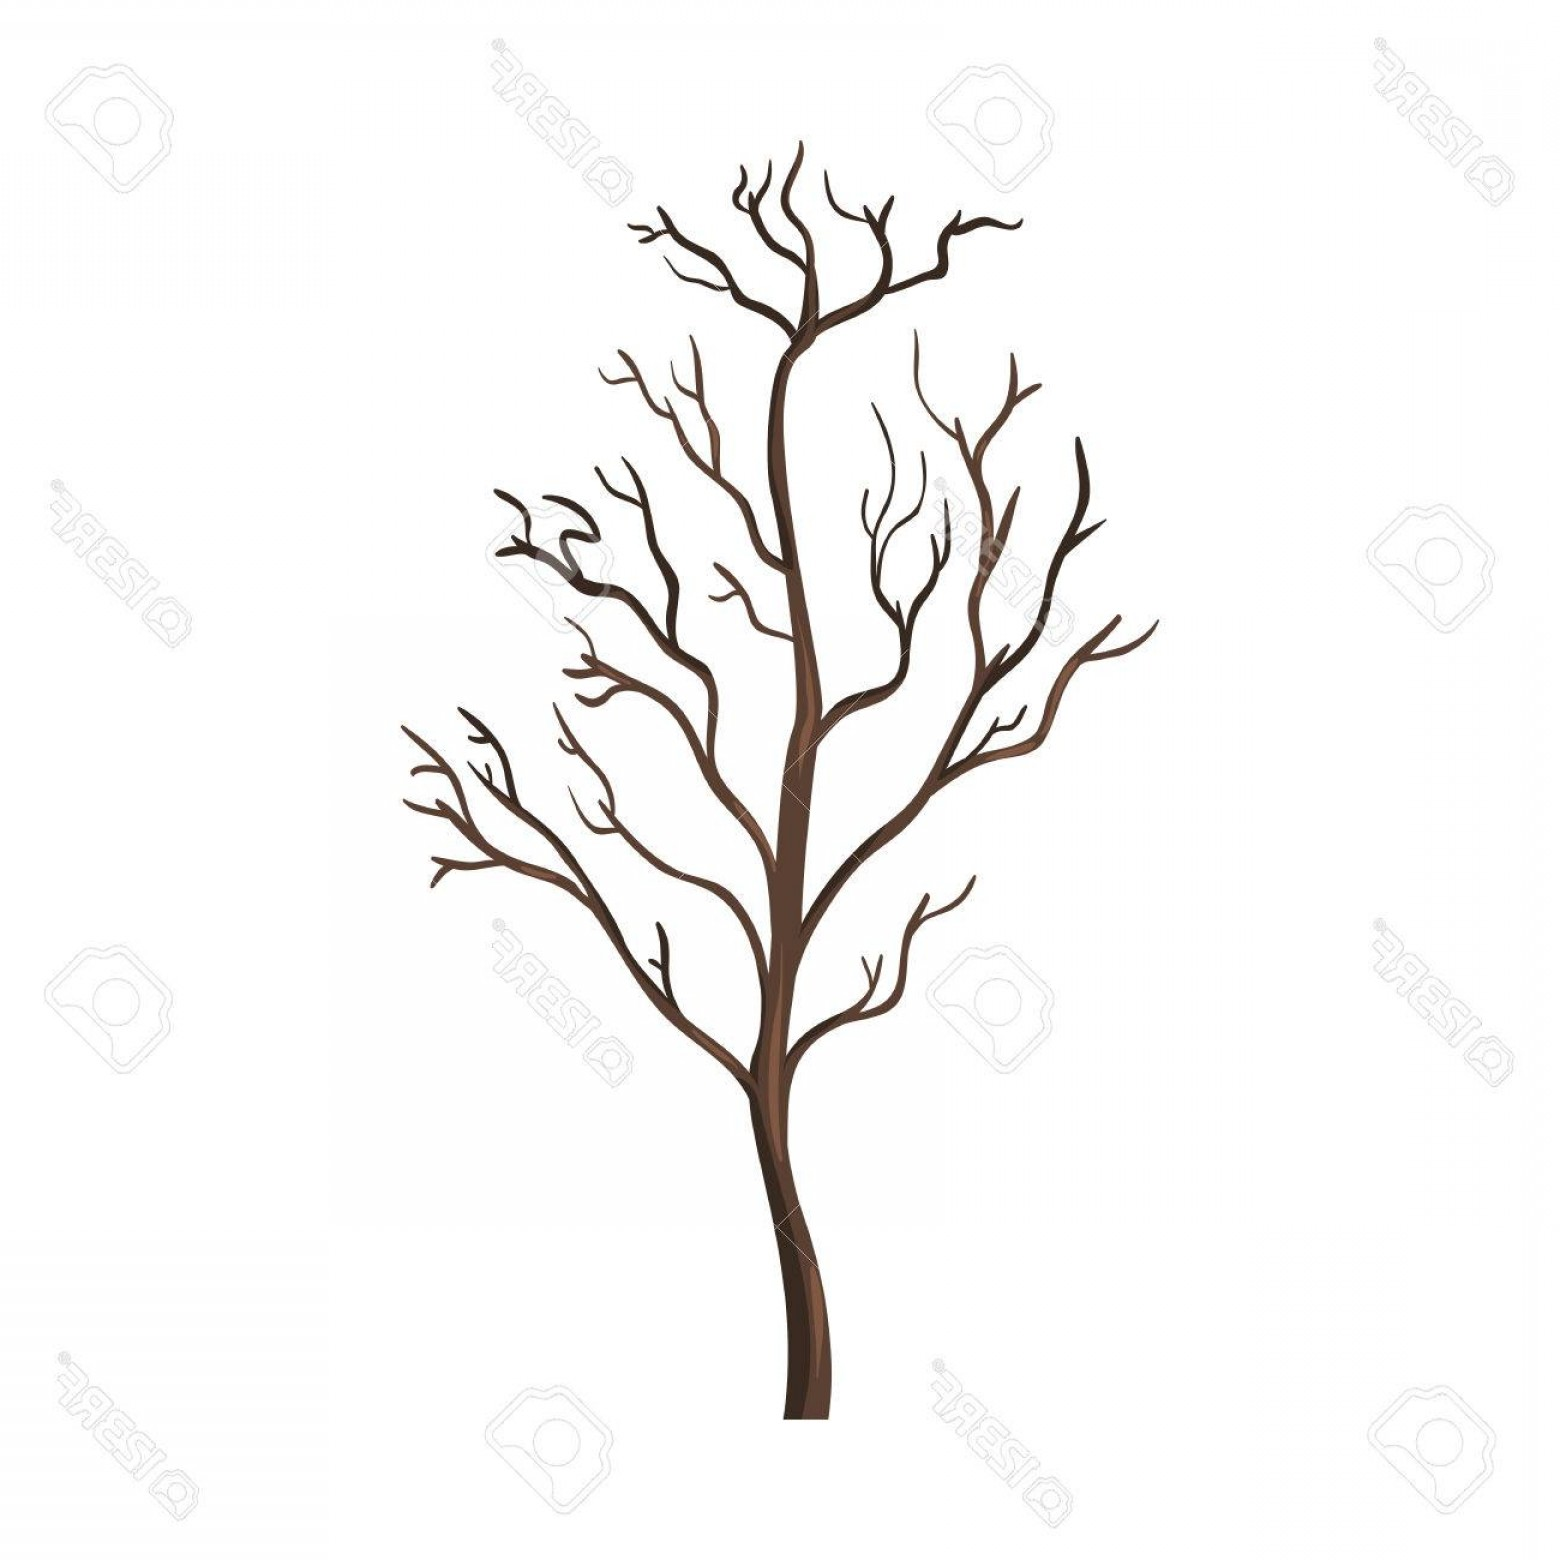 Contoon Free Black Vector Tree: Photostock Vector Vector Single Cartoon Brown Bare Tree On White Background